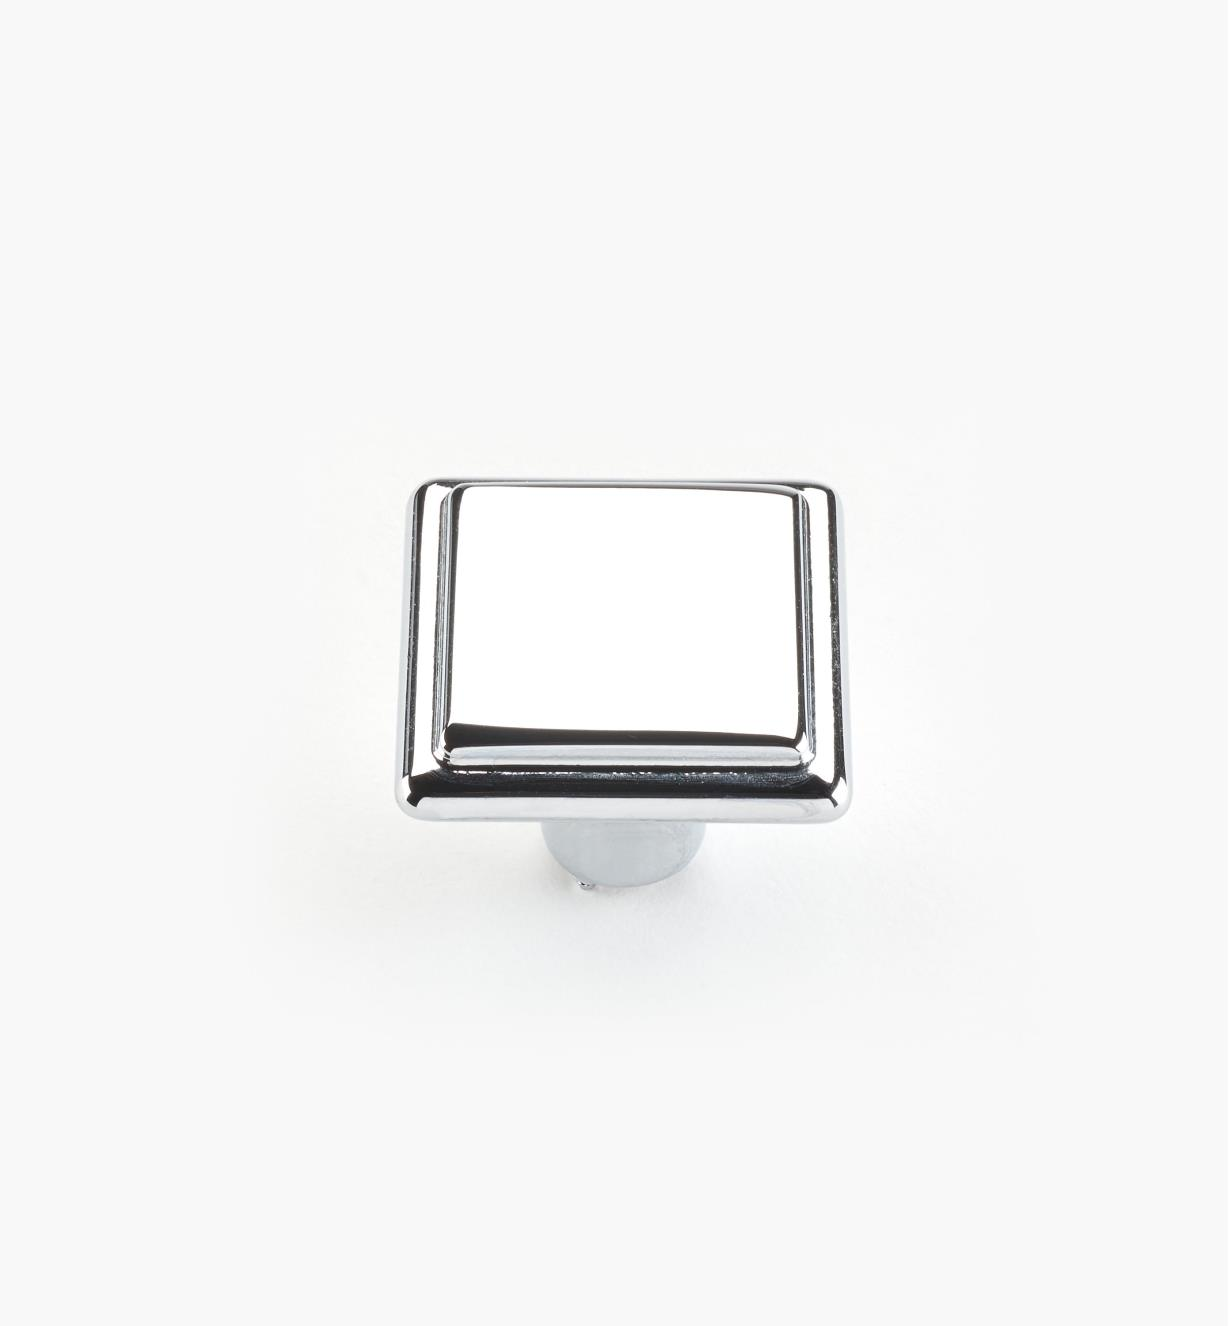 00A7030 - Alfonso Suite - 26mm x 20mm Polished Chrome Knob